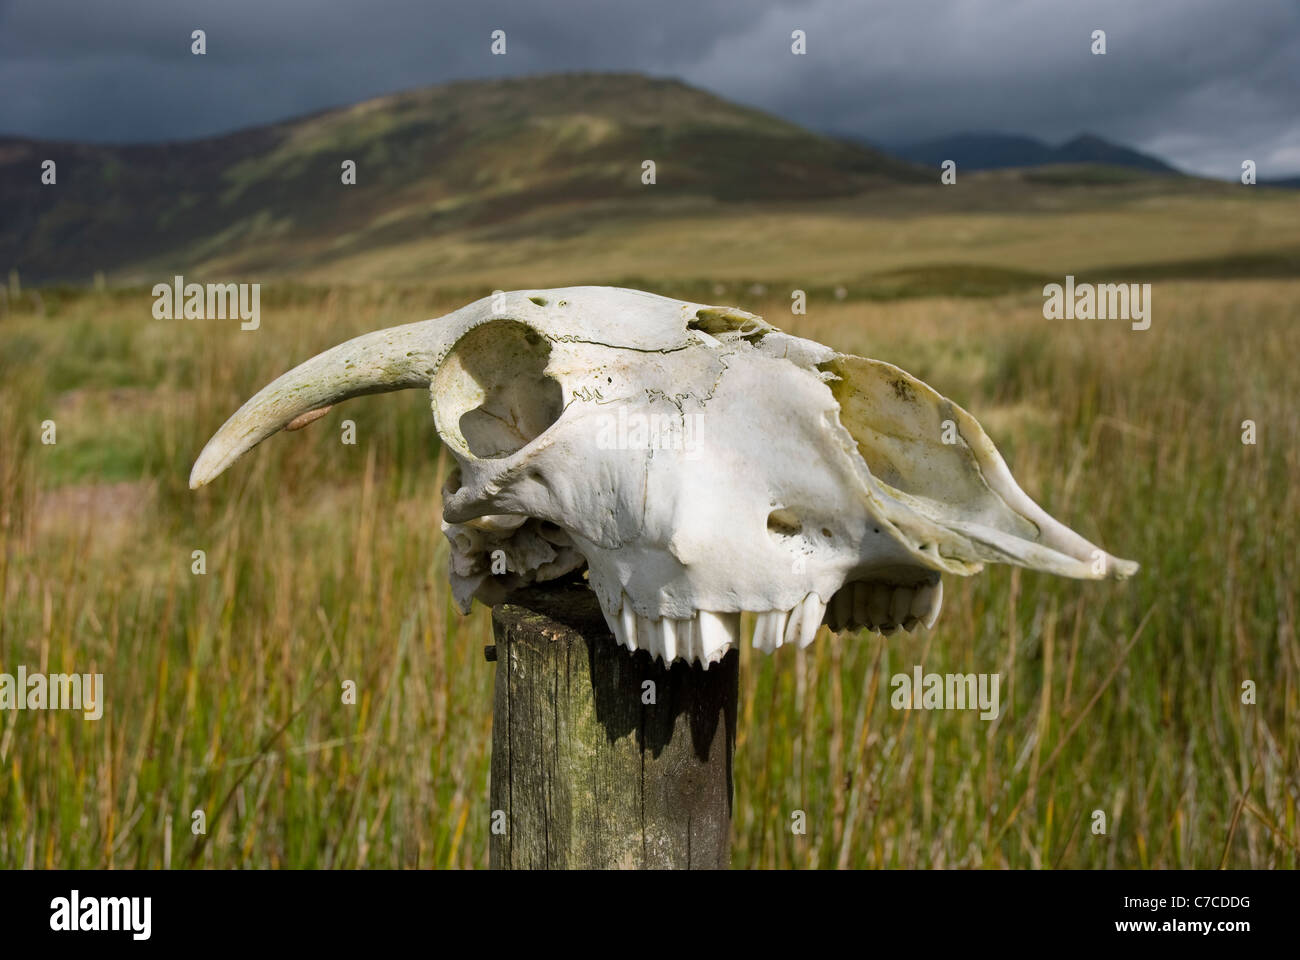 Skull of a sheep on a wooden fence post. - Stock Image